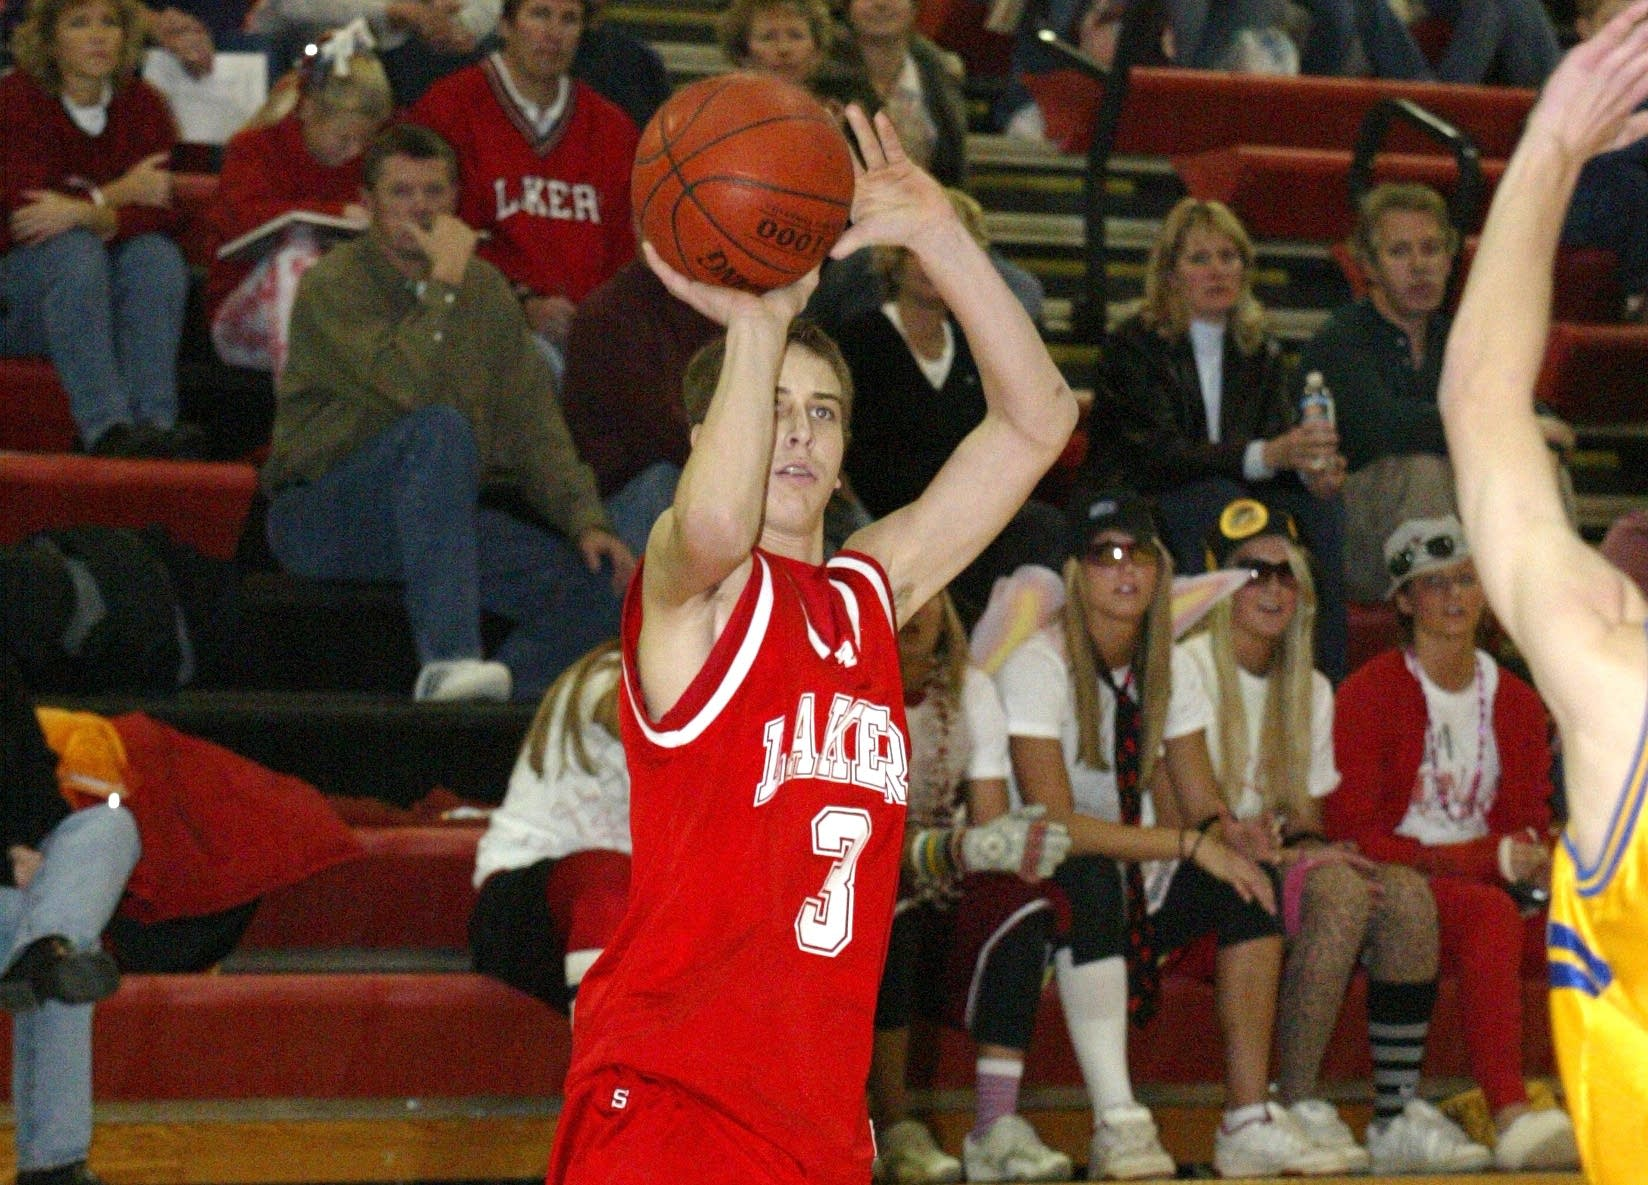 Adam Thielen playing basketbal at Detroit Lakes High School in 2005.